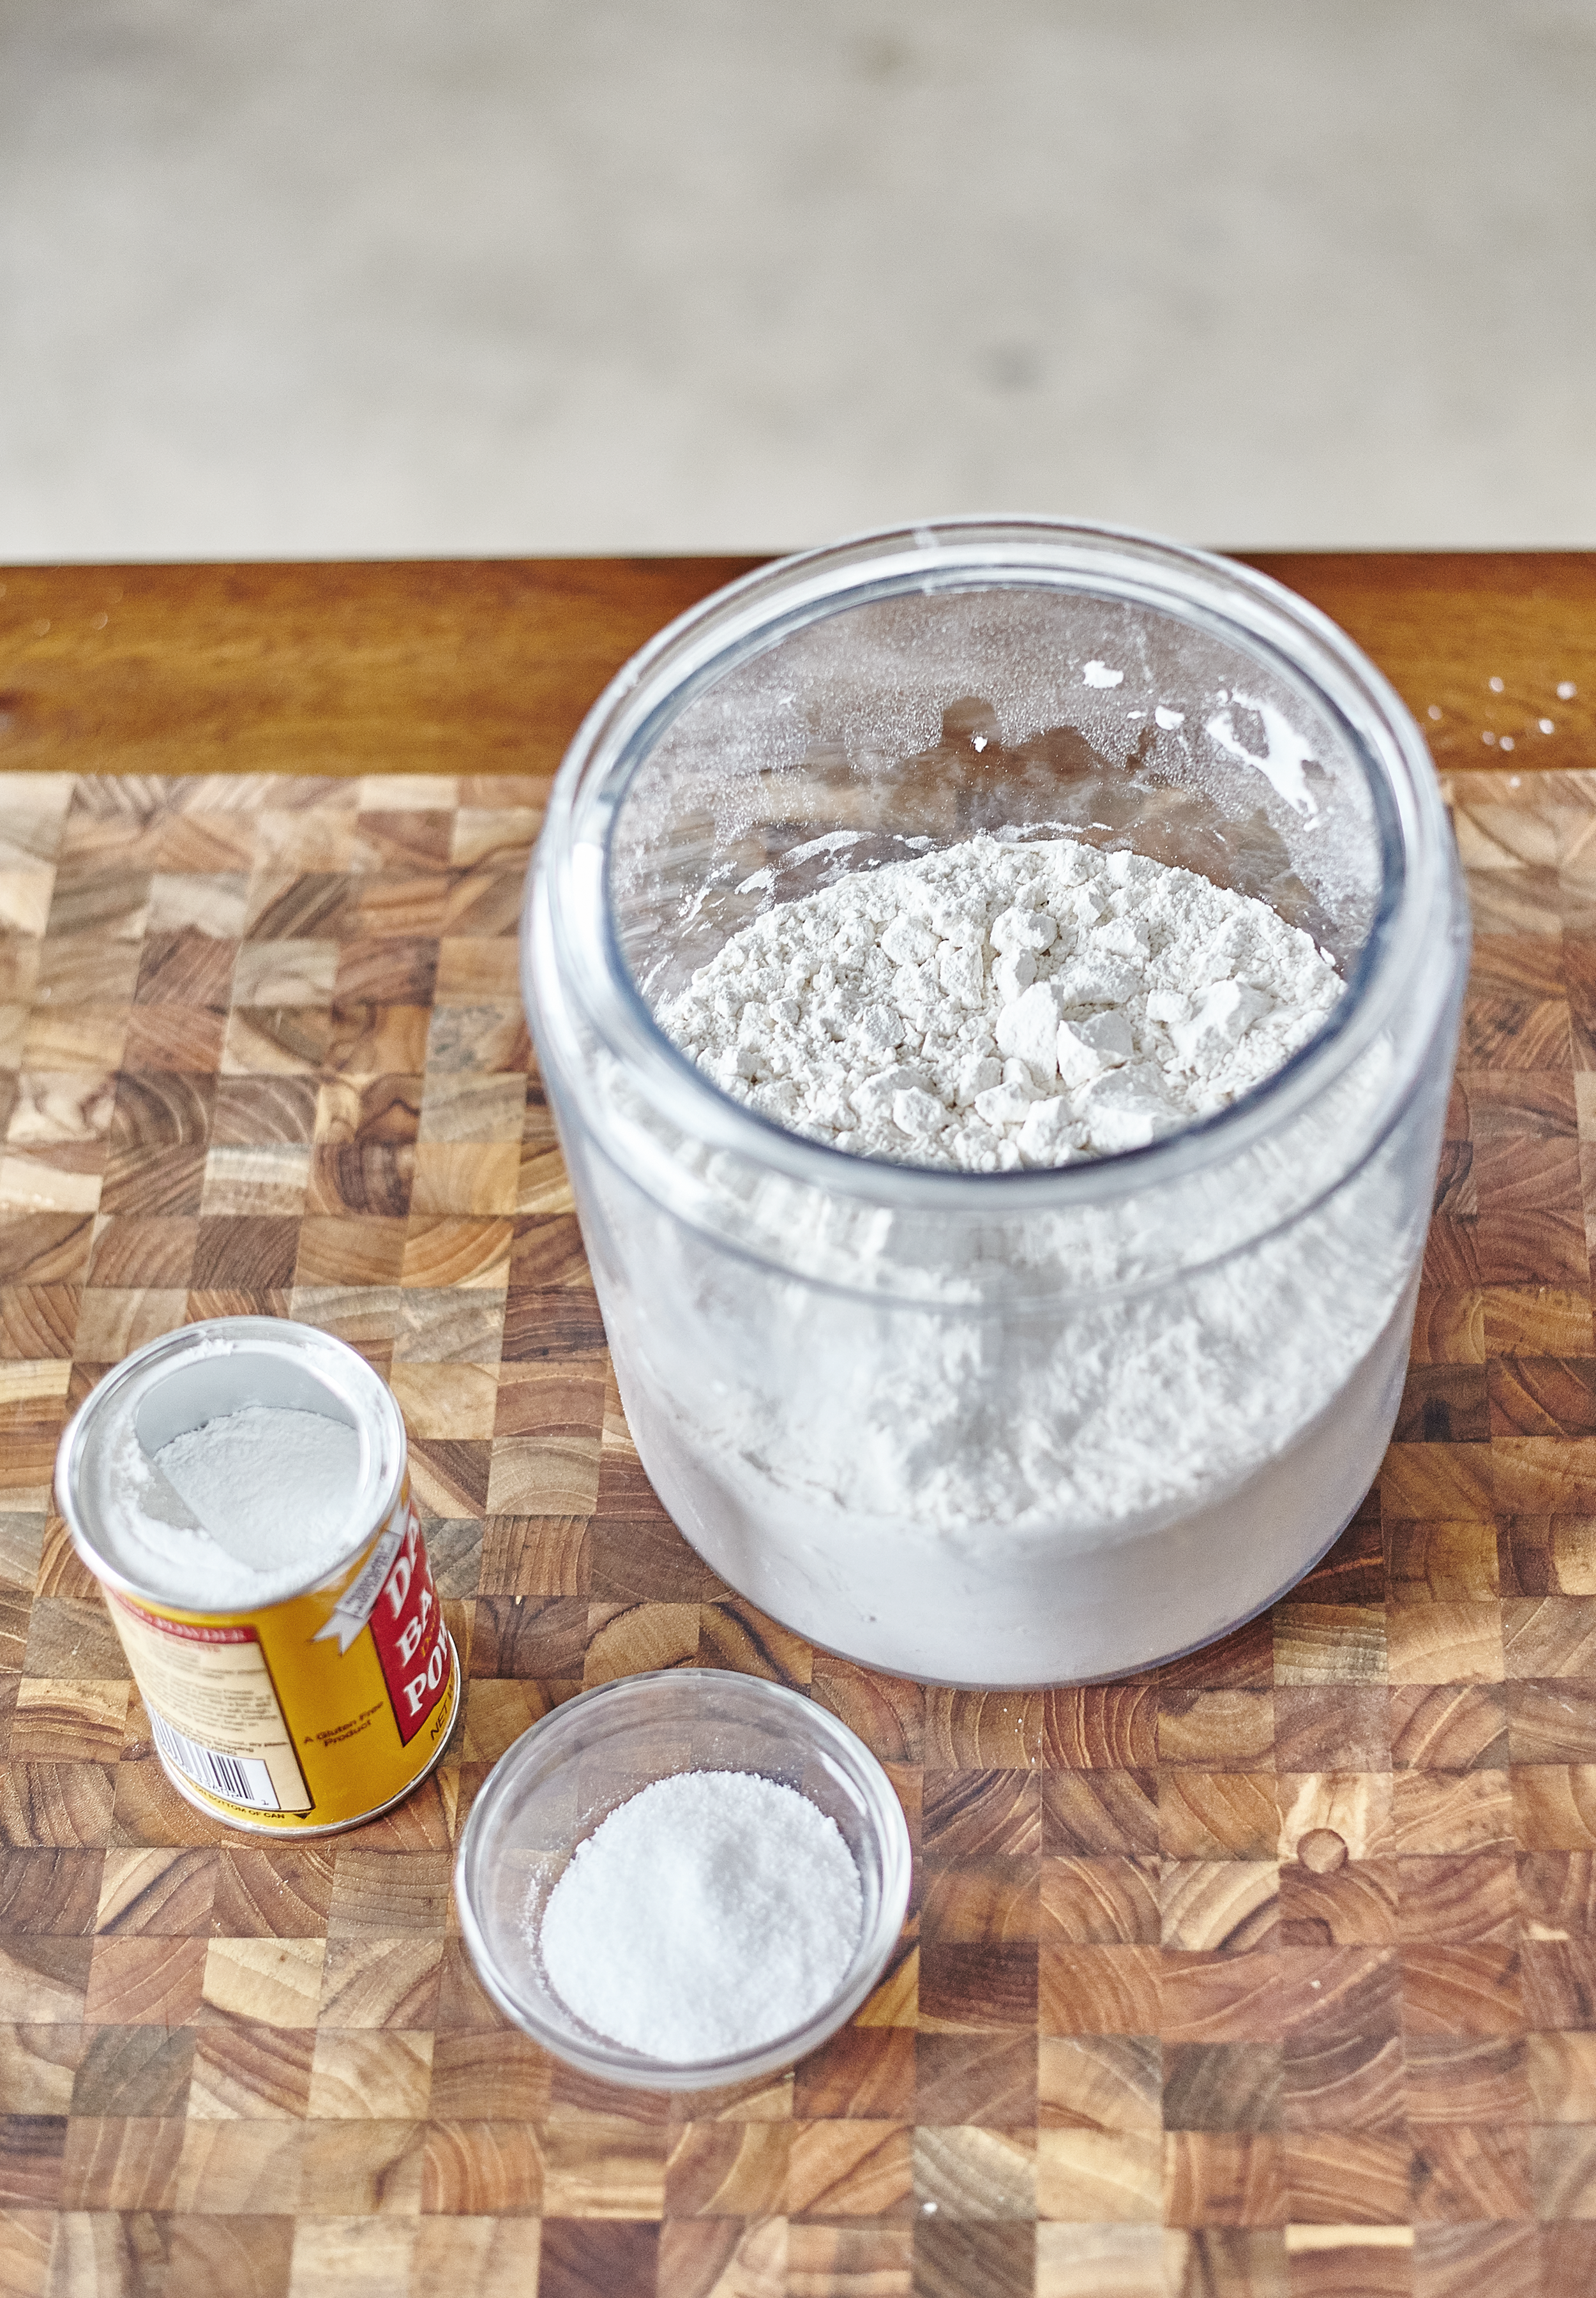 How To Make Self-Rising Flour | Kitchn